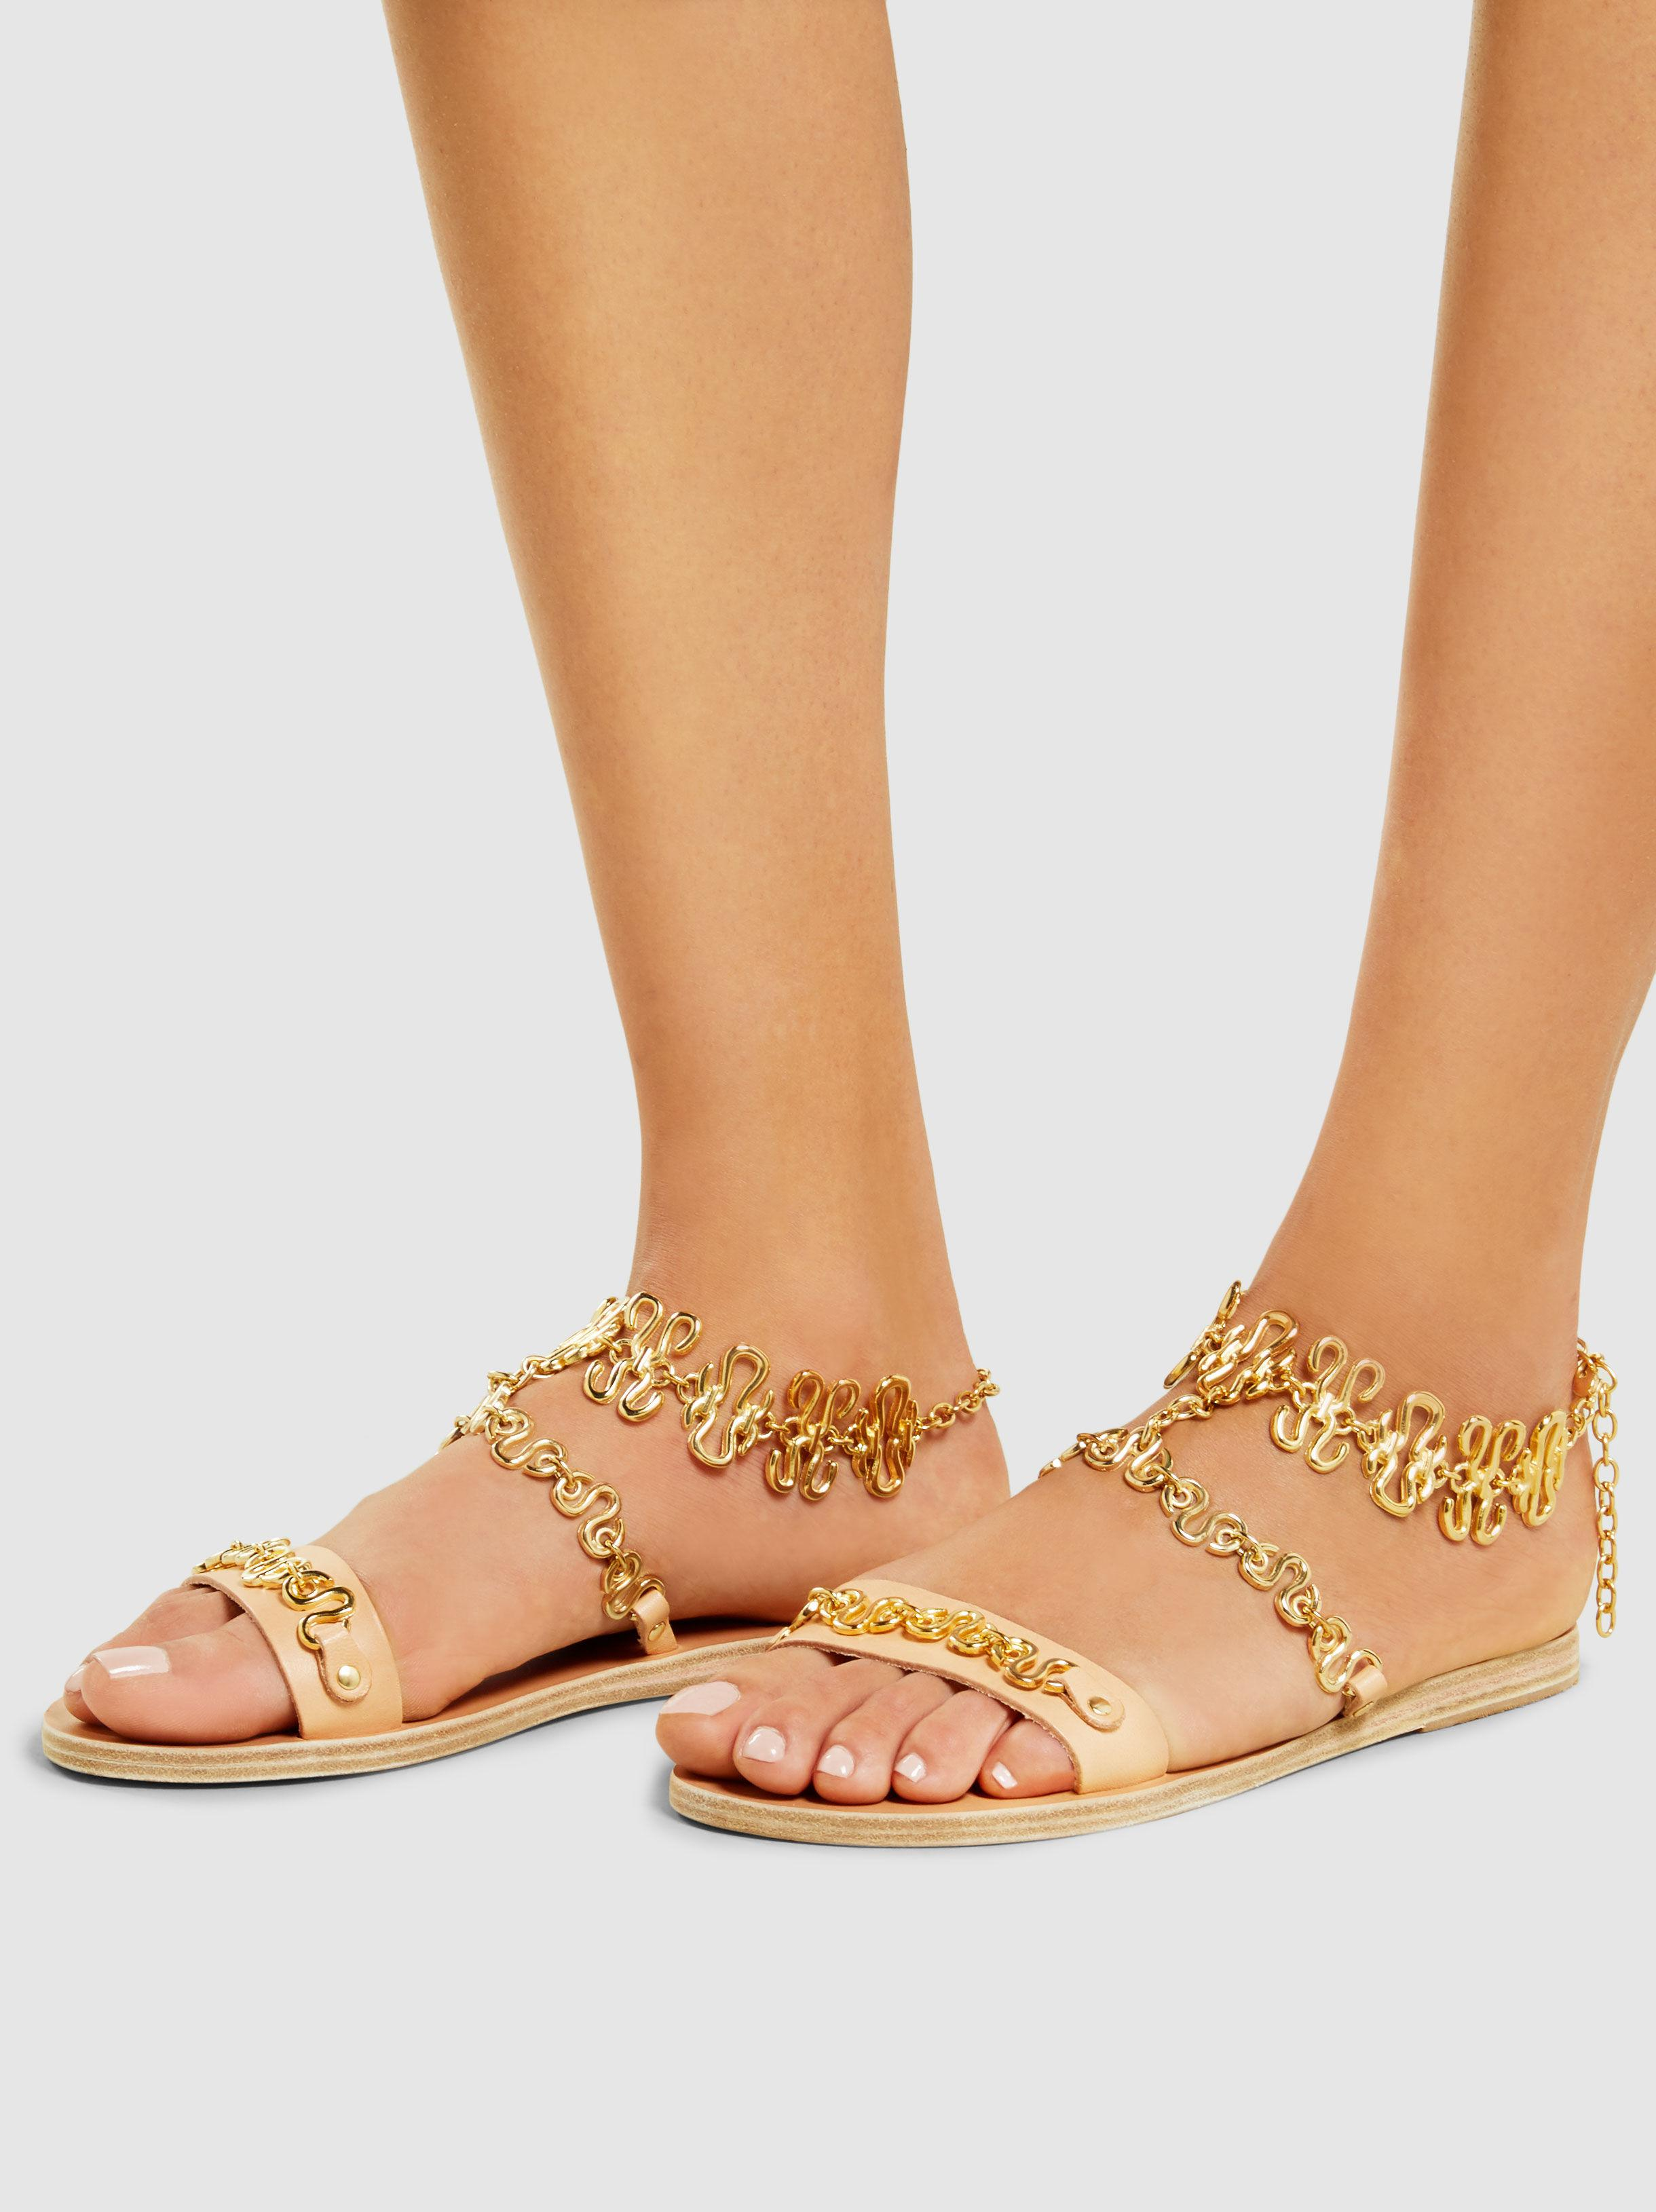 Buy Cheap Newest Clearance Manchester Great Sale Nyx Chain-Embellished Leather Sandals Ancient Greek Sandals Discount Nicekicks 2018 New Online Nny3WVKl